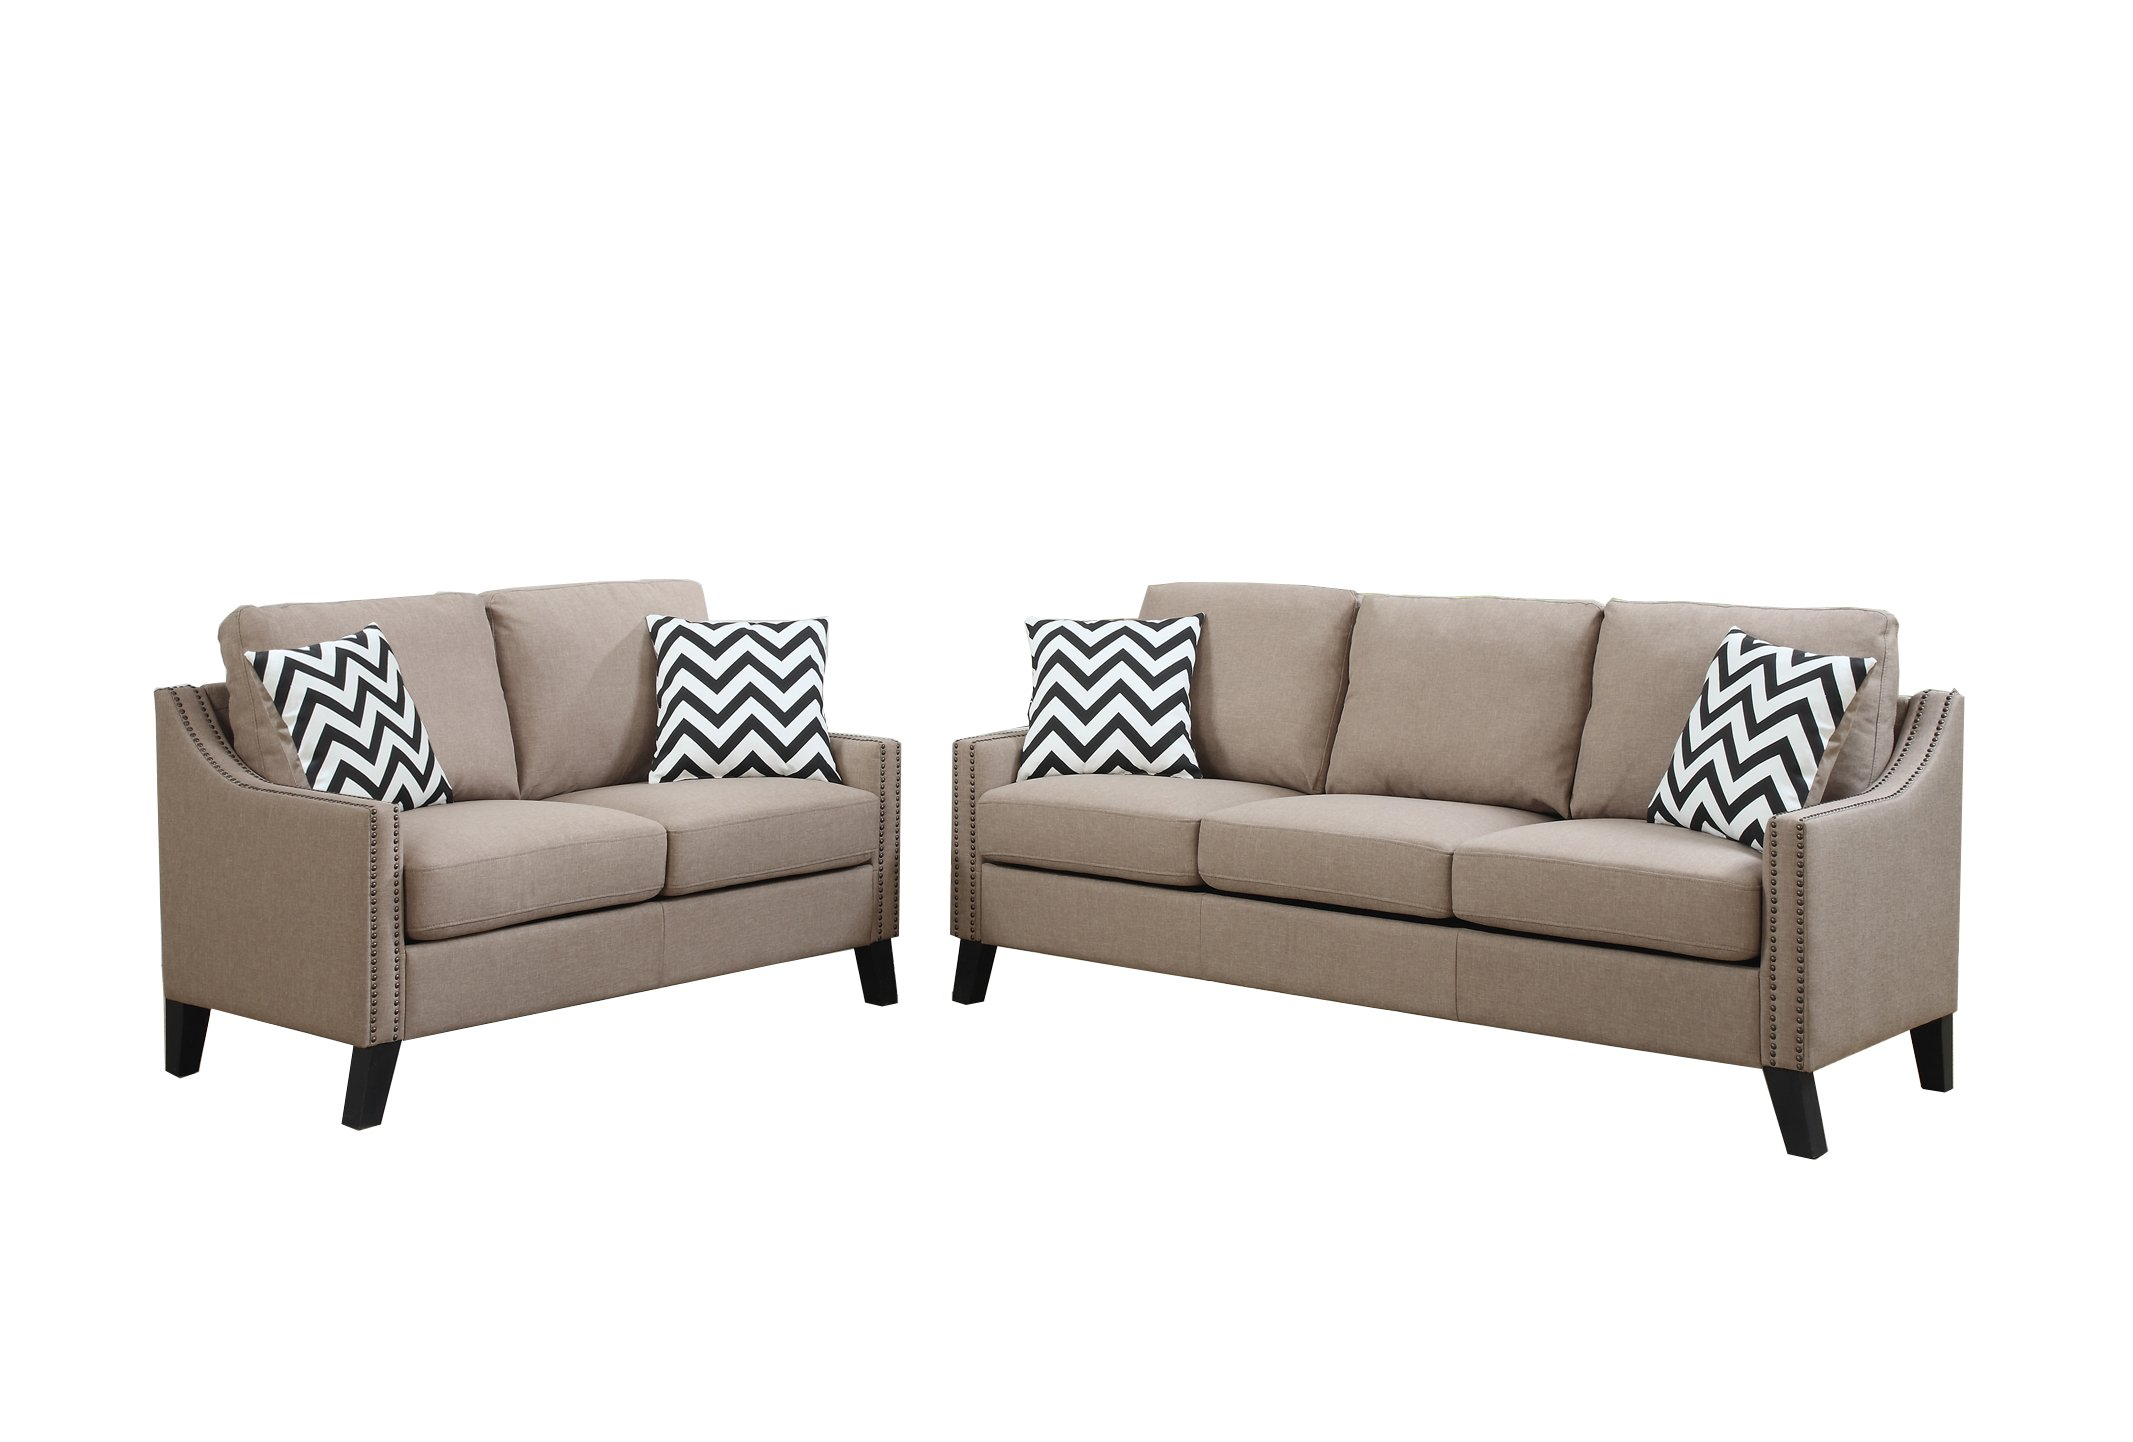 Poundex F6908 Bobkona Debora Linen-Like 2 Piece Sofa and Loveseat Set, Sand by Poundex